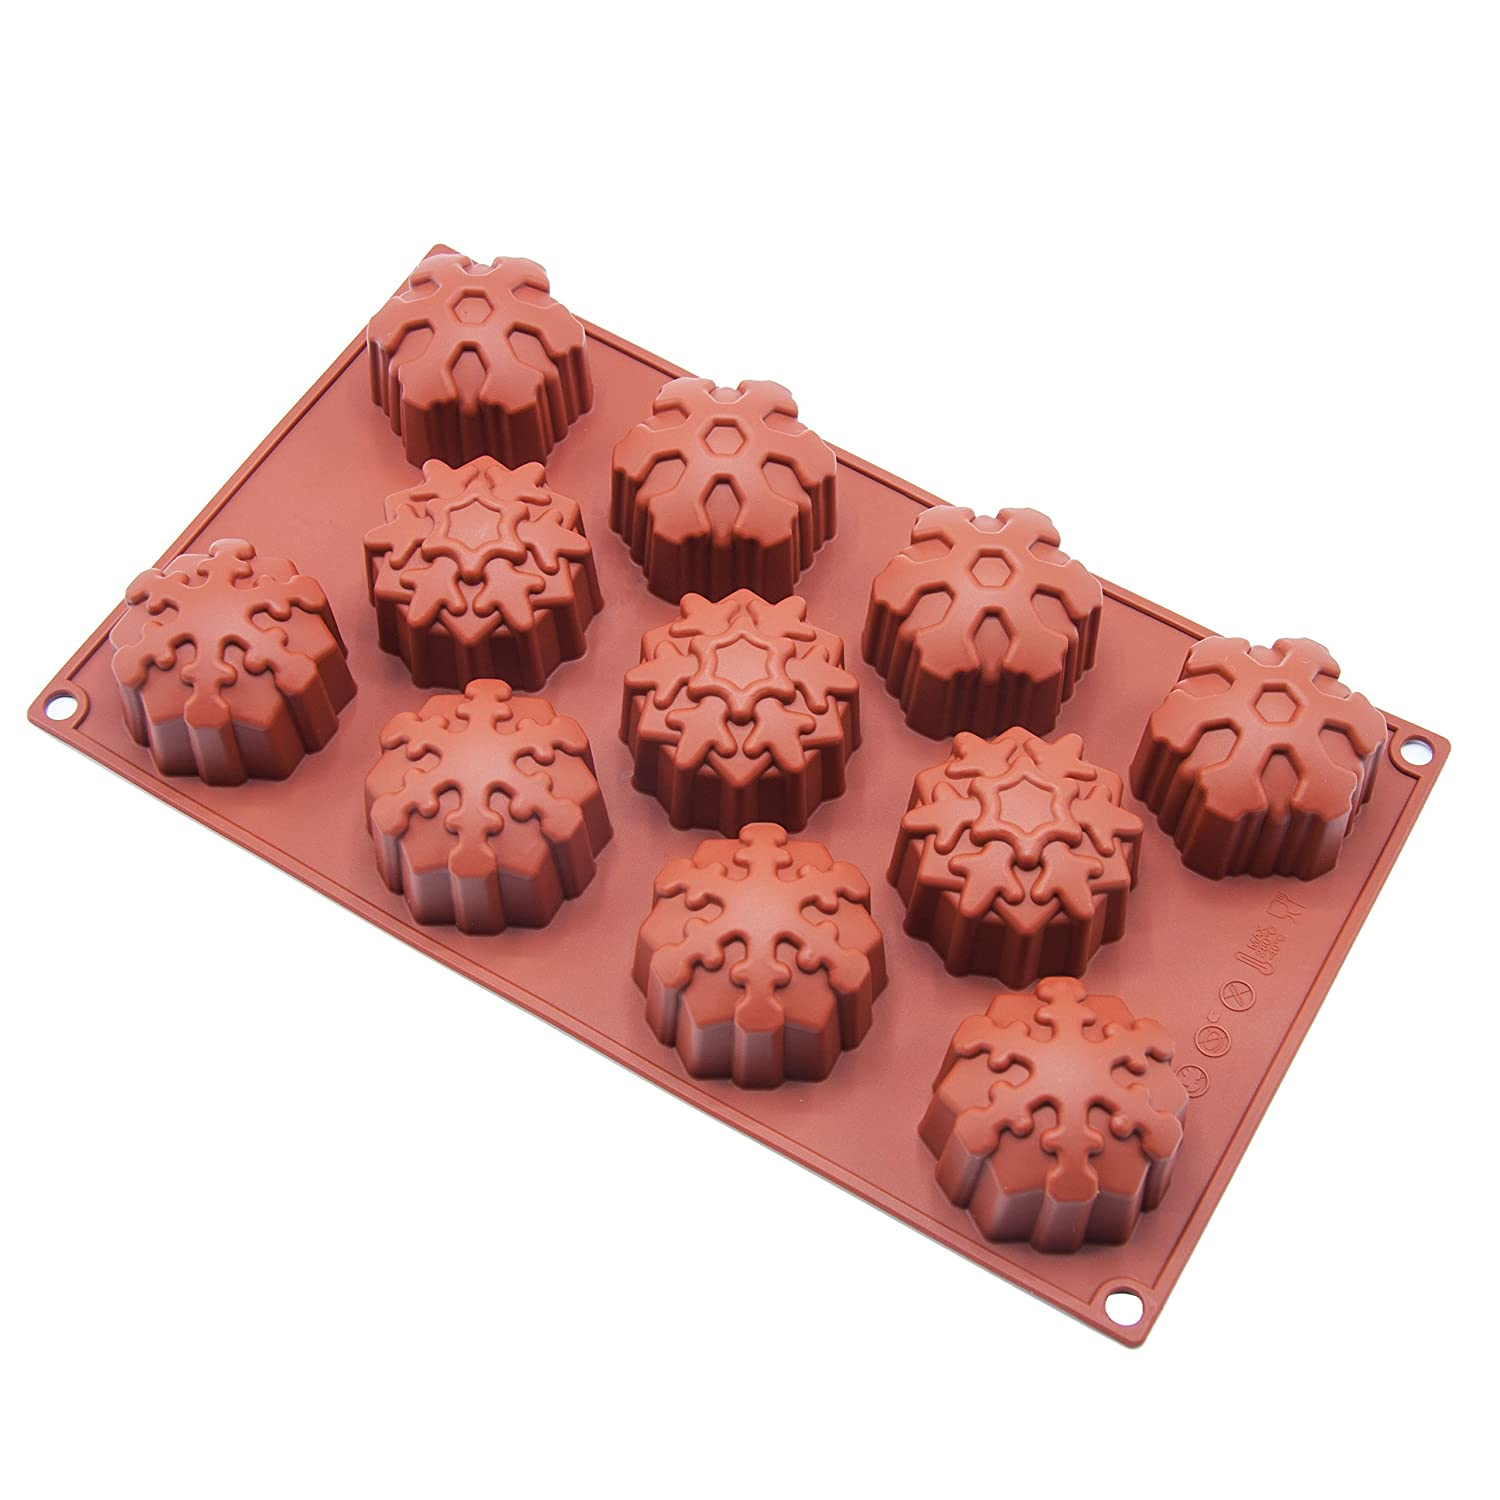 11-Cavity Snowflake Silicone Cake Mould Cake Pan & Chocolate Mould Non-Stick Silicone Baking Pan for Soap, Cookies, Jelly, Chocolate, Ice Cream, Muffin Joy House